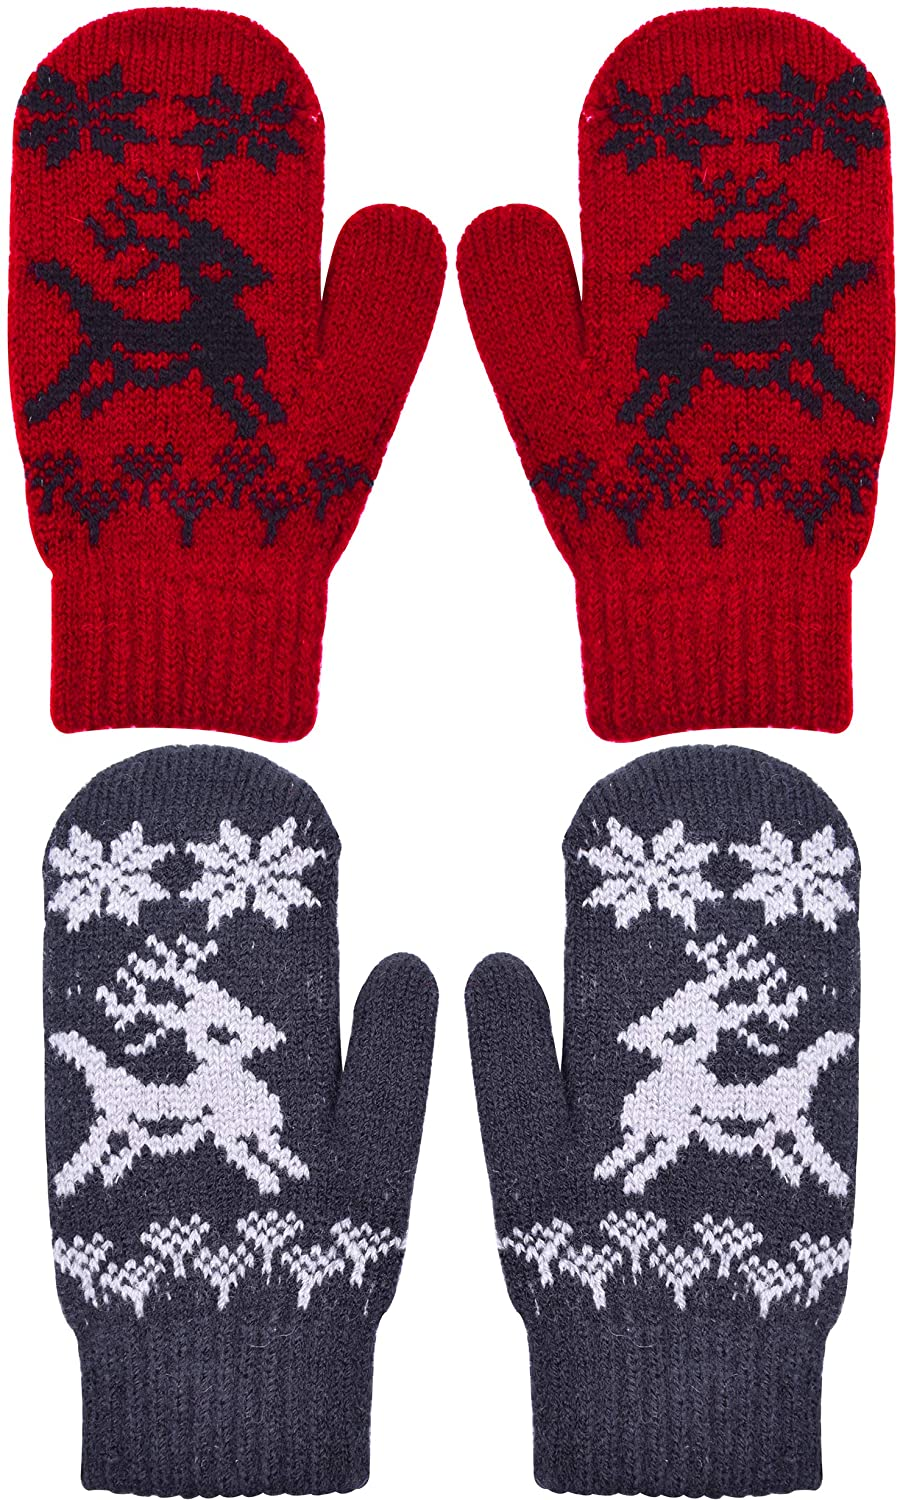 YJDS Kids Christmas Mittens Knit Wool Winter Gloves Warm 2/3 Pairs QX-KidsMittens03